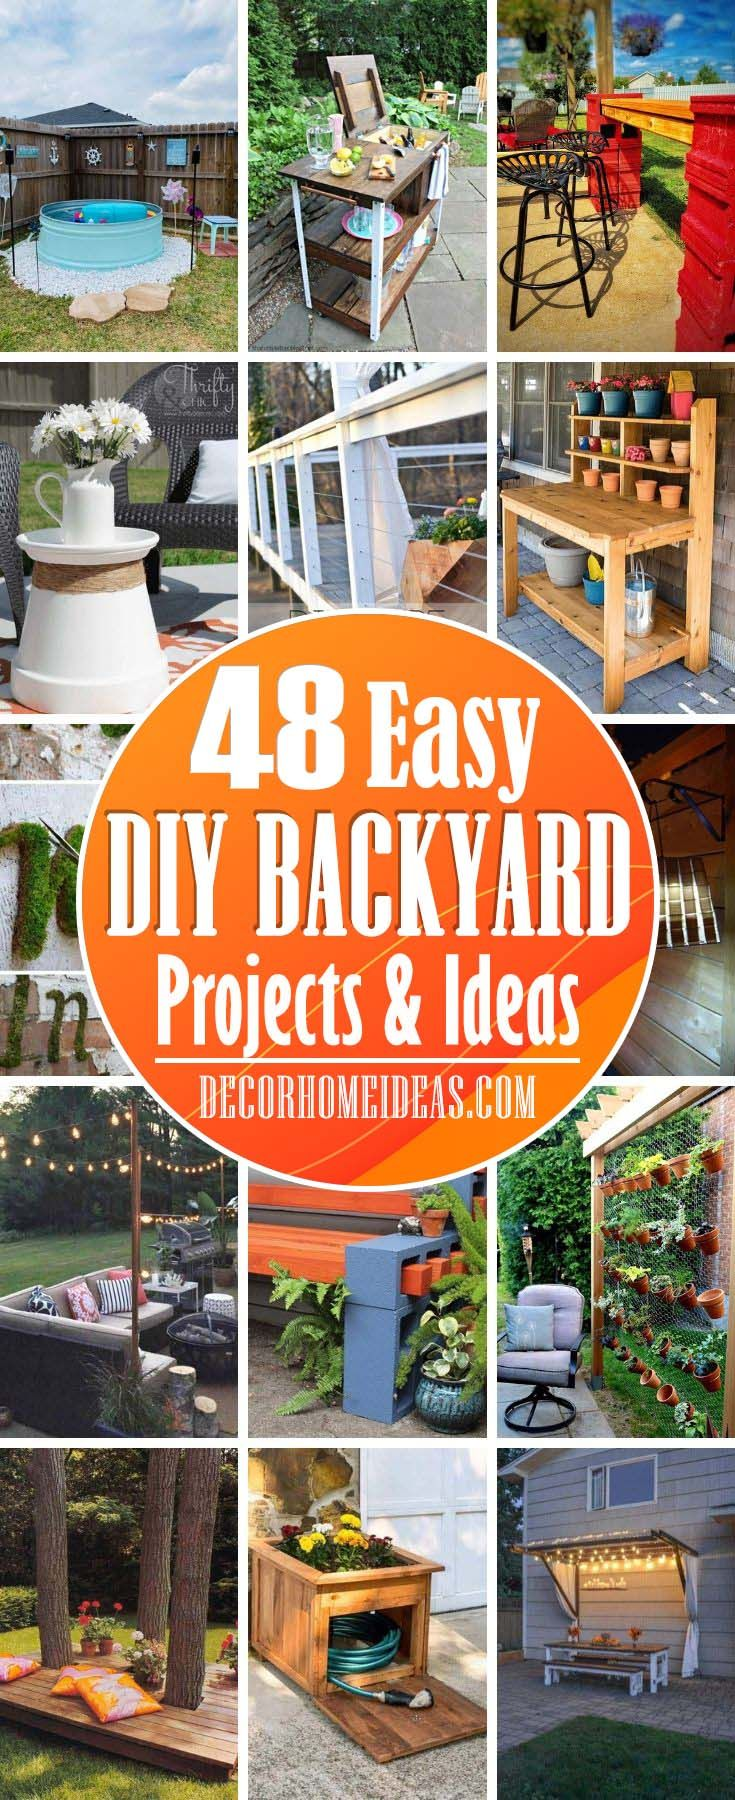 48 Best Diy Backyard Ideas That Are So Easy To Copy Backyard Projects Backyard Diy Projects Diy Garden Projects